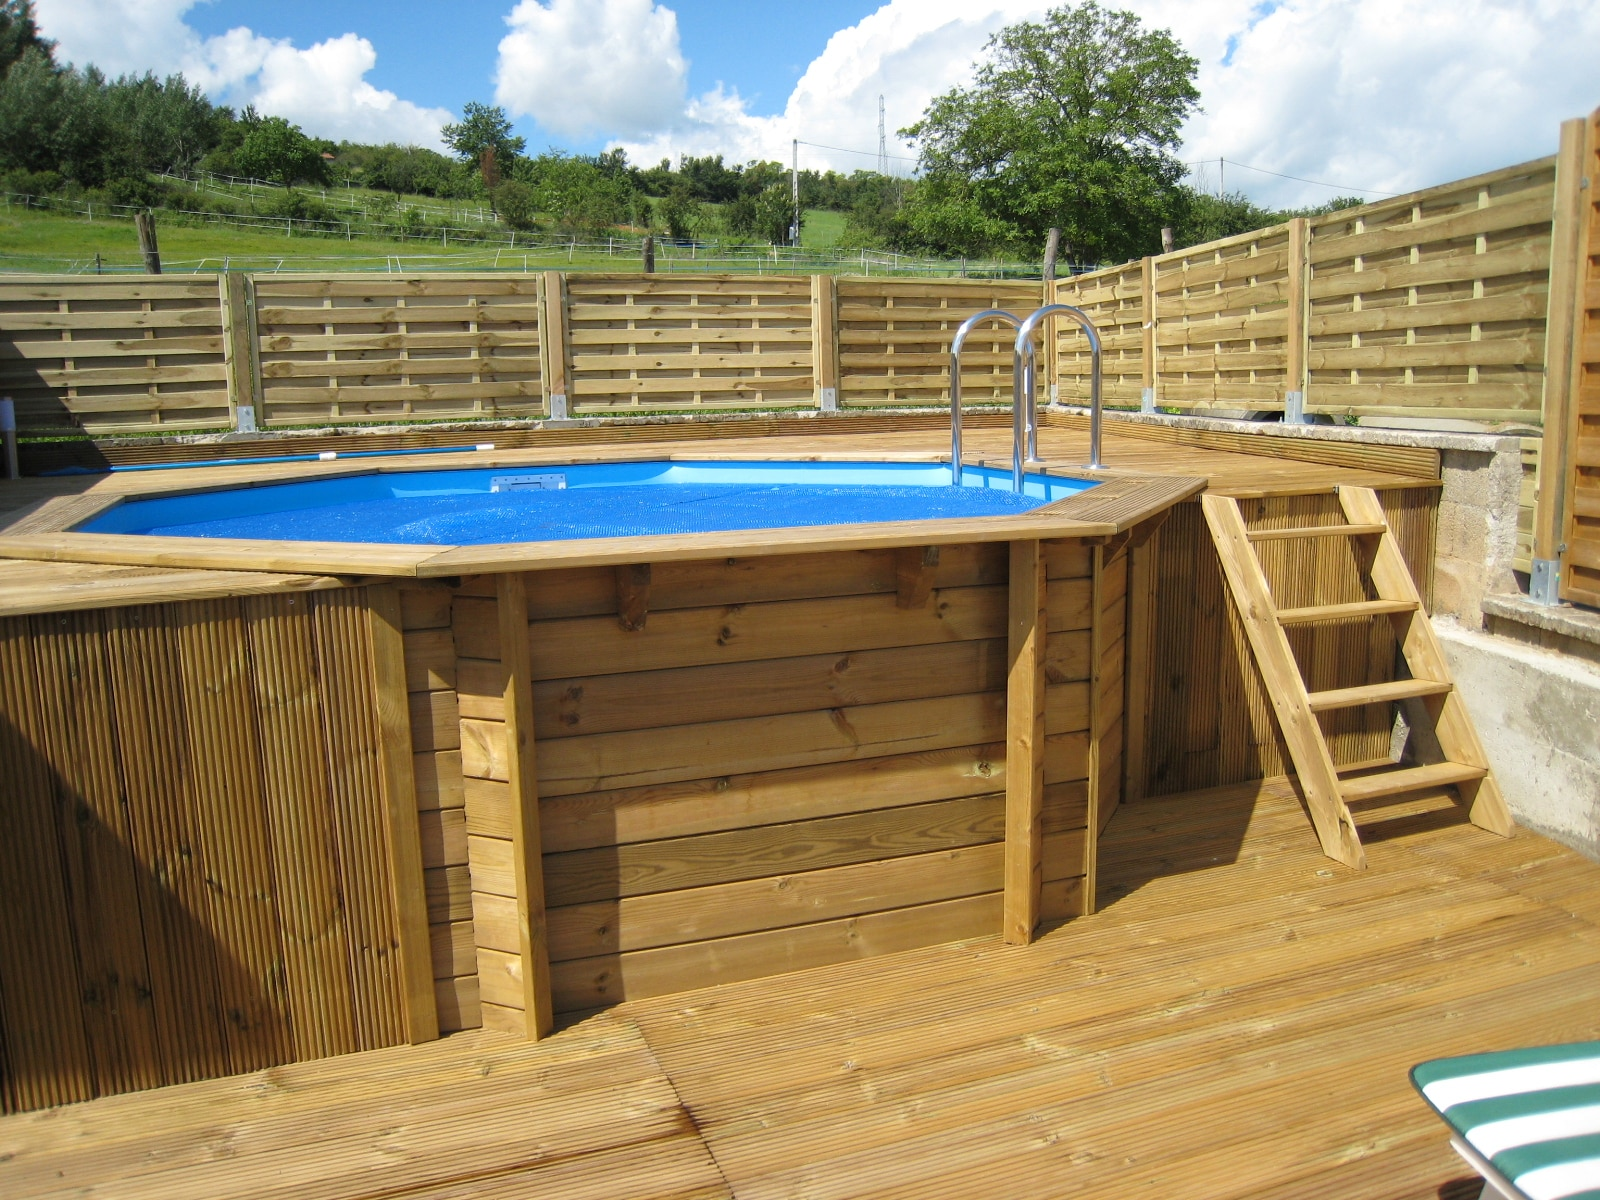 Piscine en bois comment l 39 installer blog jardin for Piscine en bois